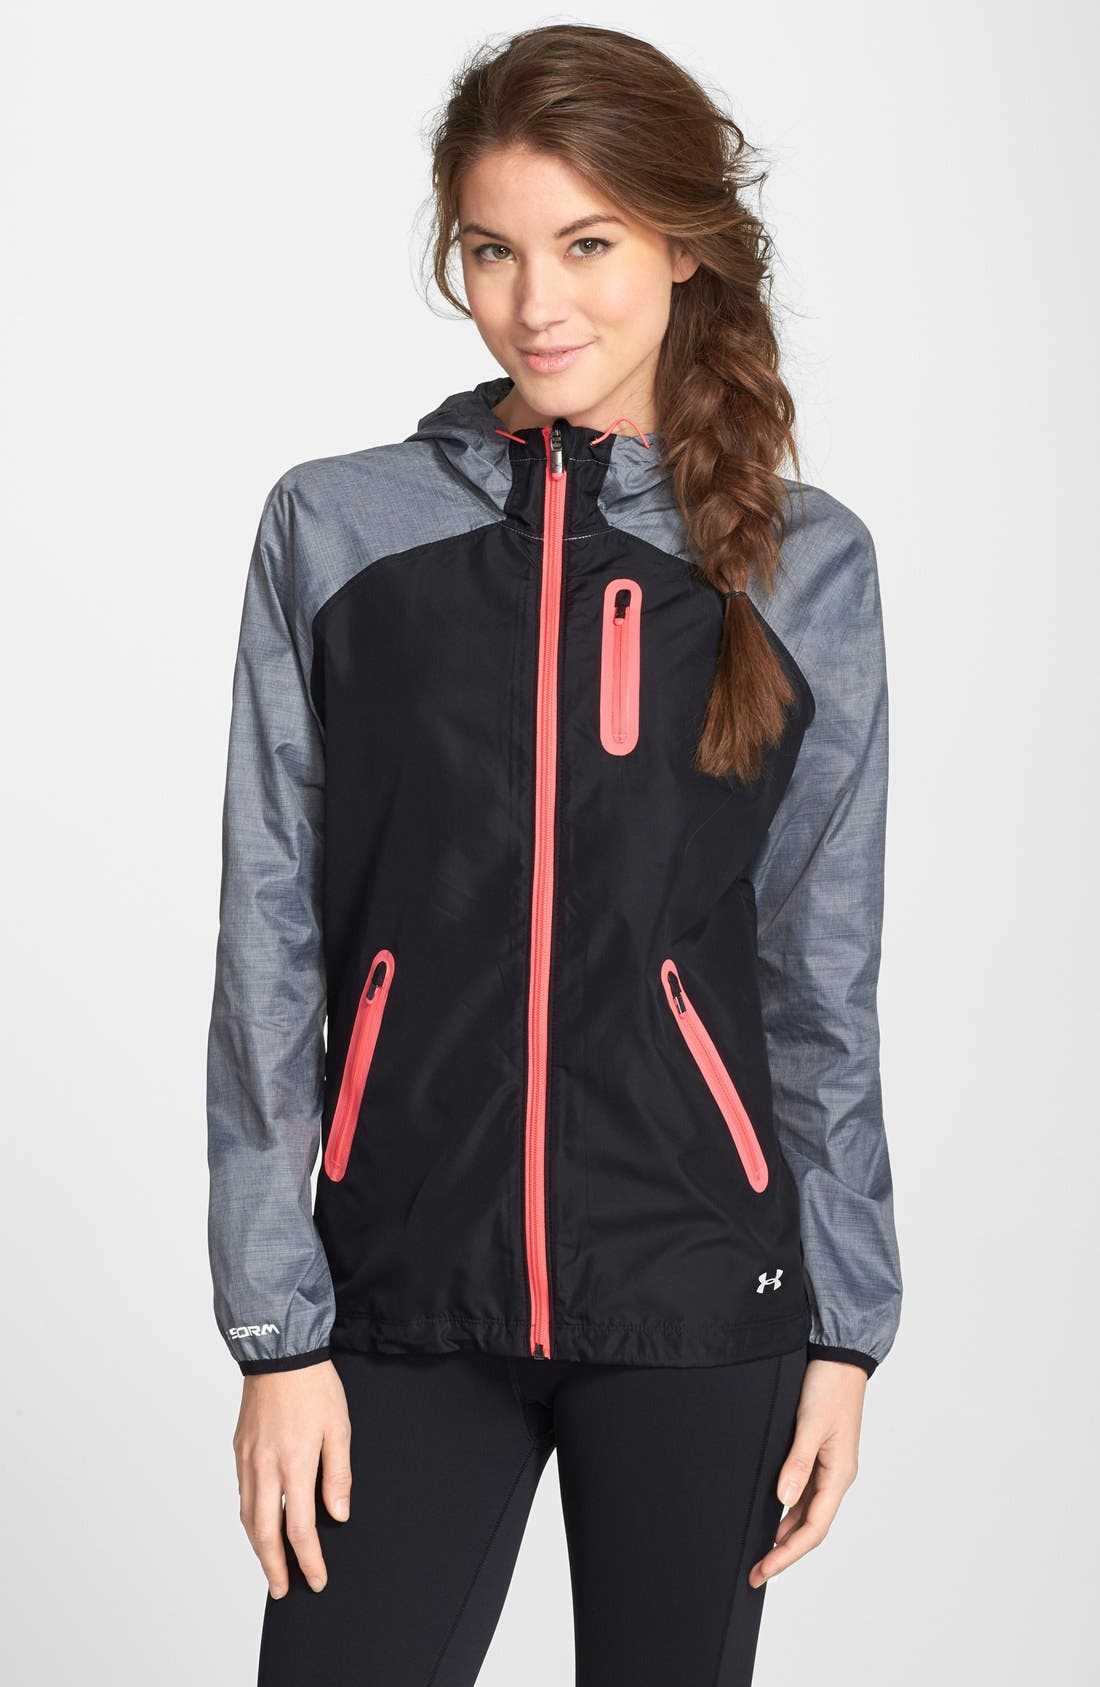 Alternate Image 1 Selected - Under Armour 'Qualifier' Running Jacket